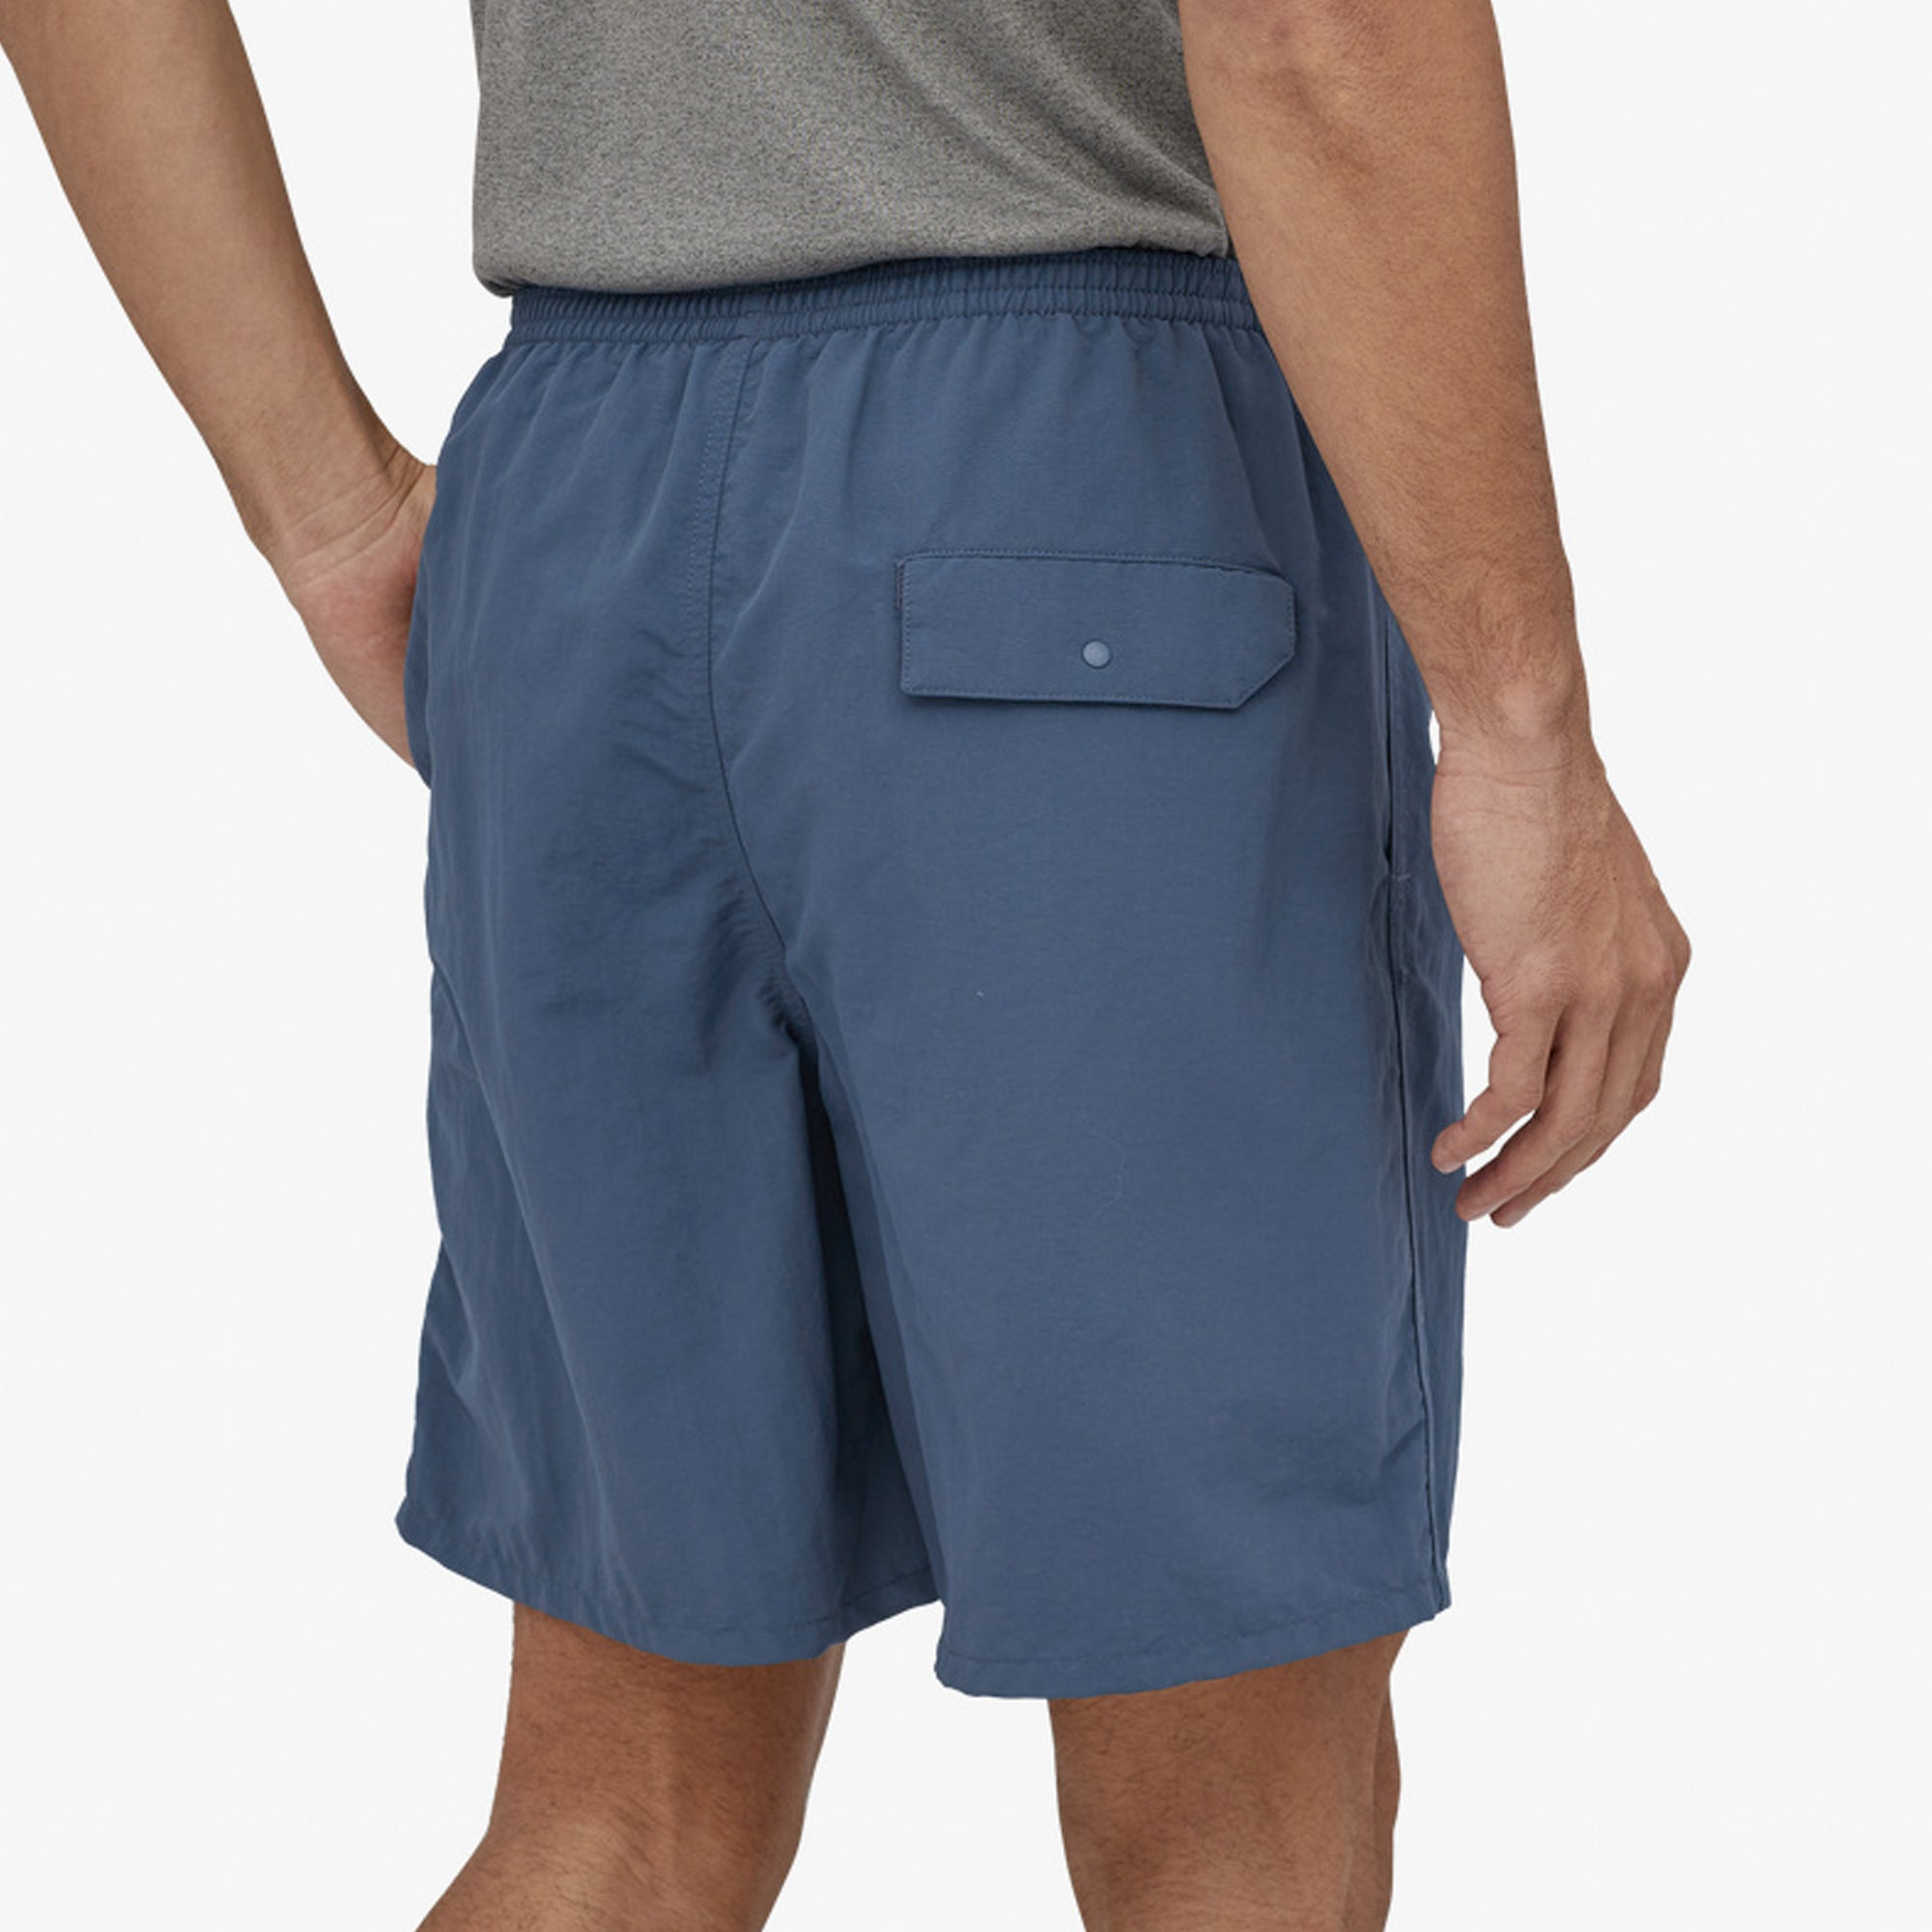 Patagonia Longs Men's Boardshorts